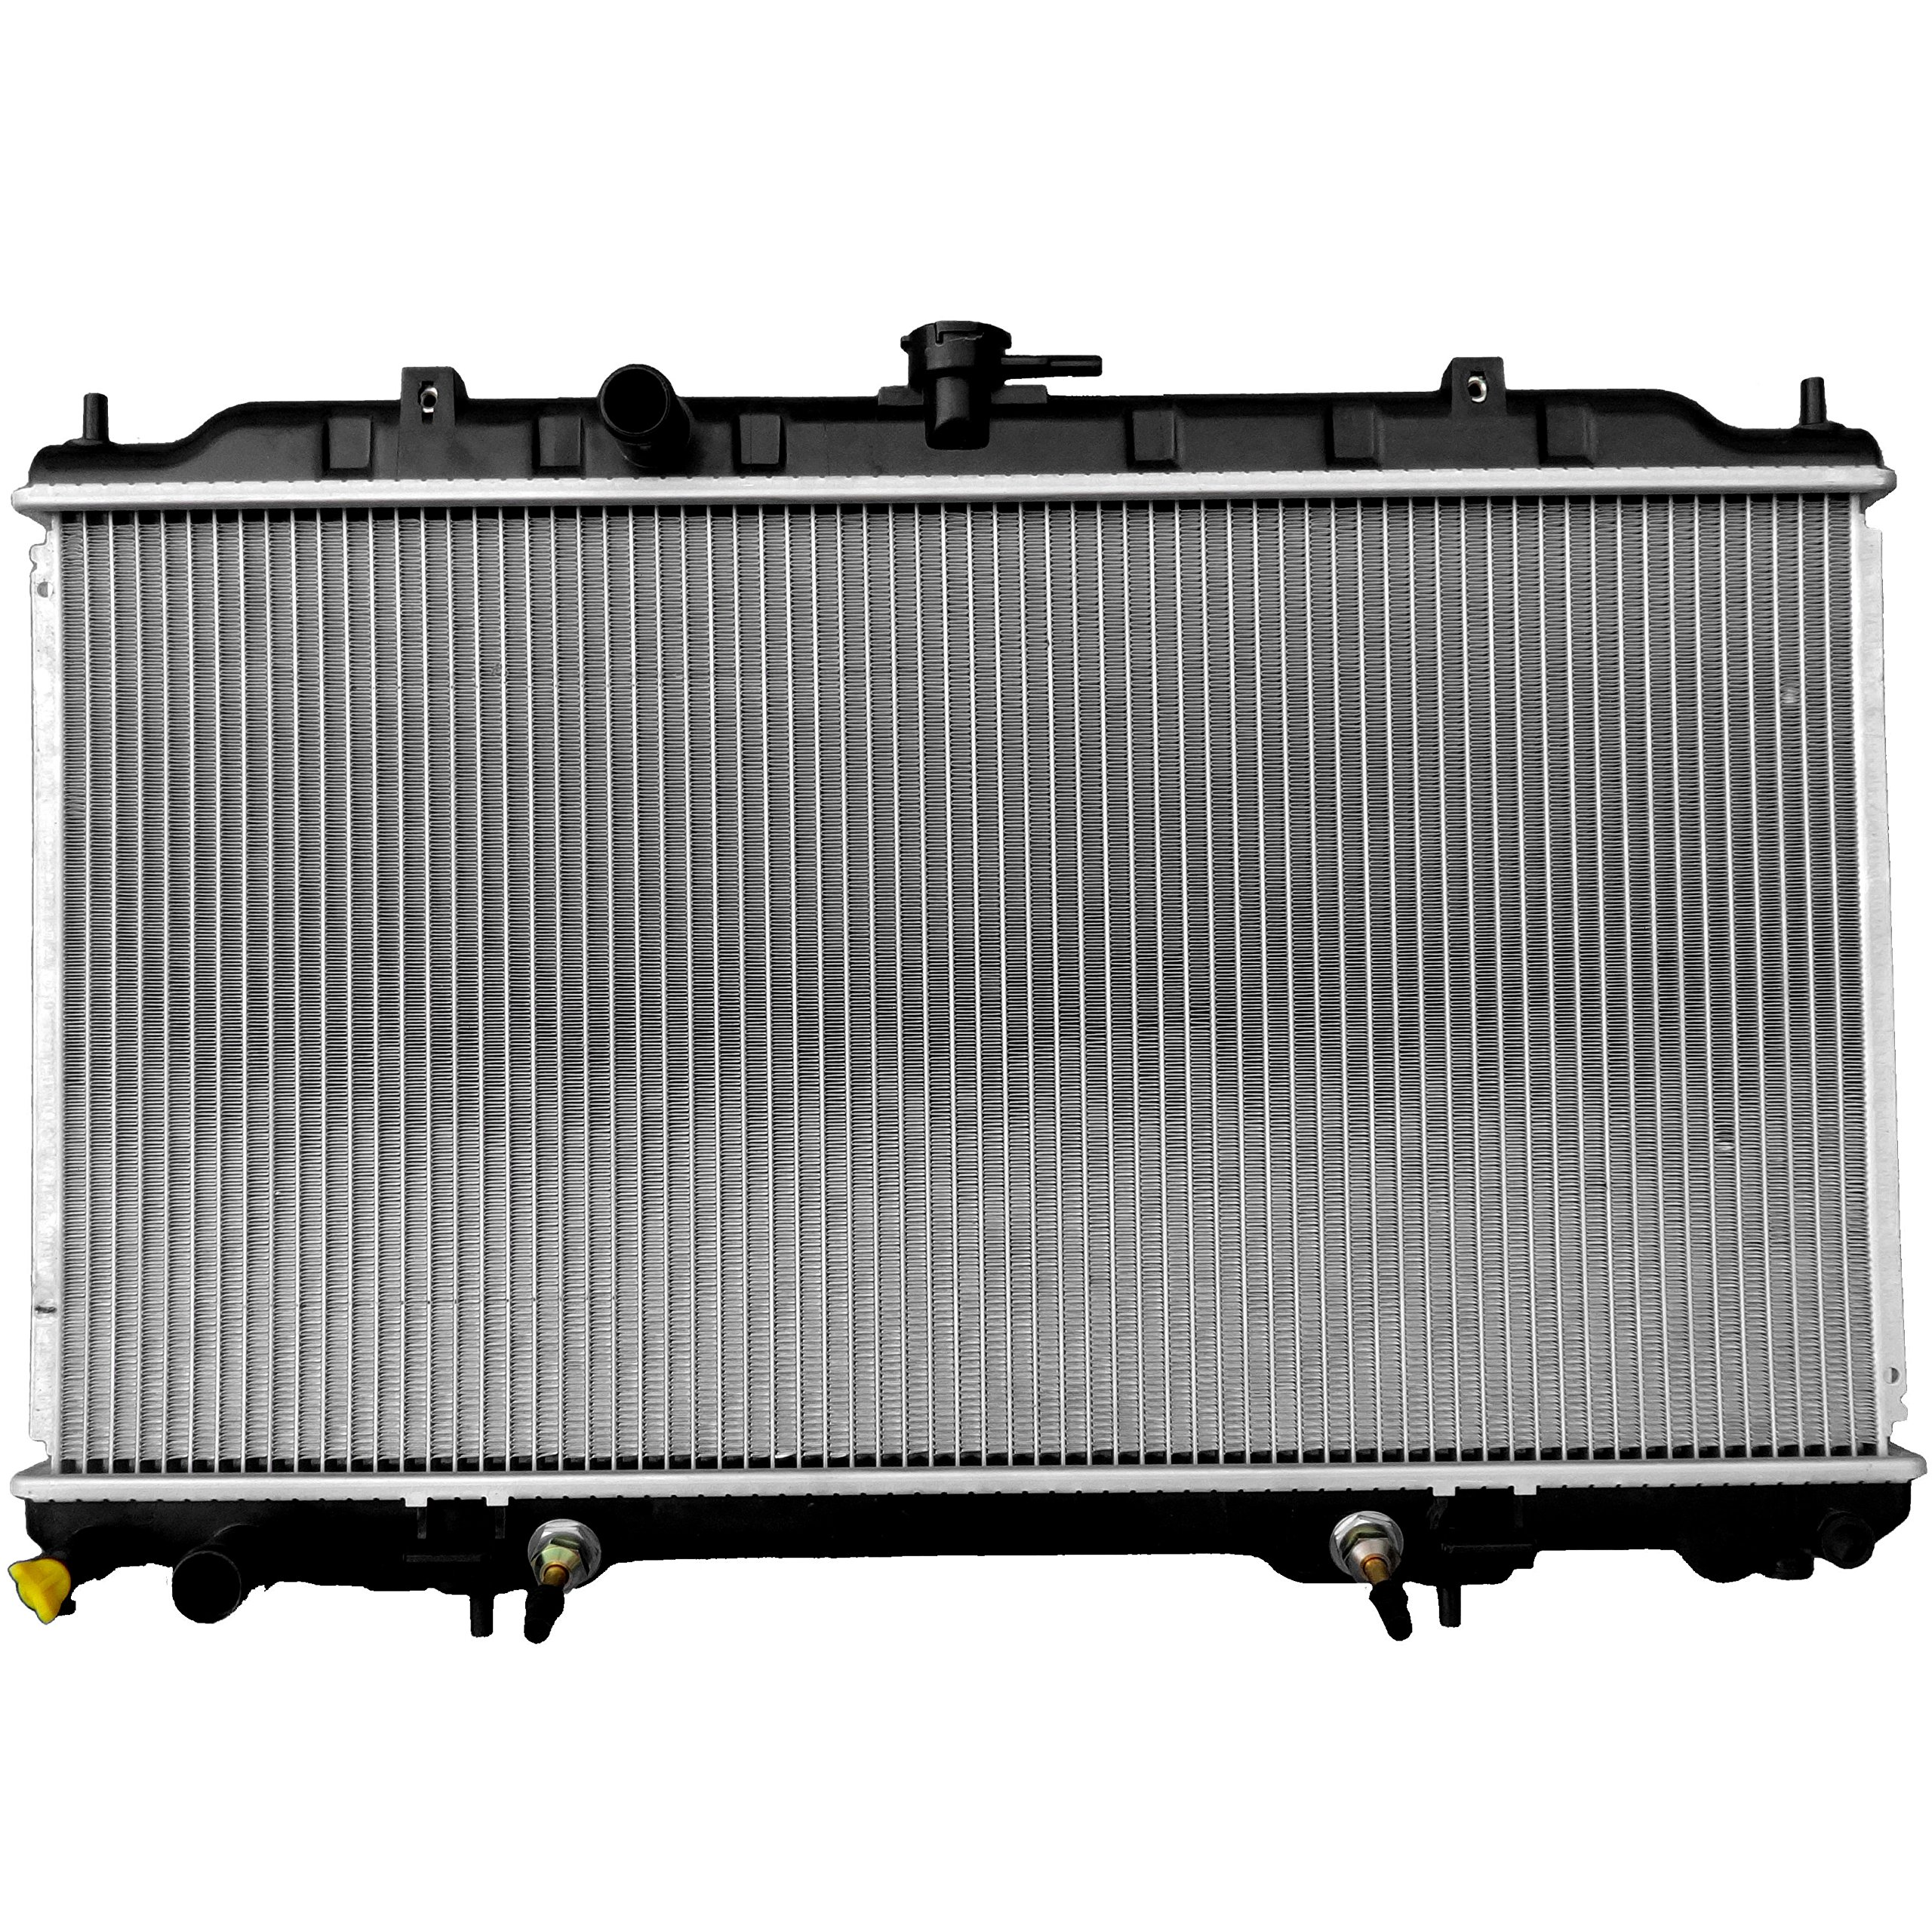 SCITOO Radiator 2346 fit 2000 - 2006 Nissan Sentra Base 1.8L